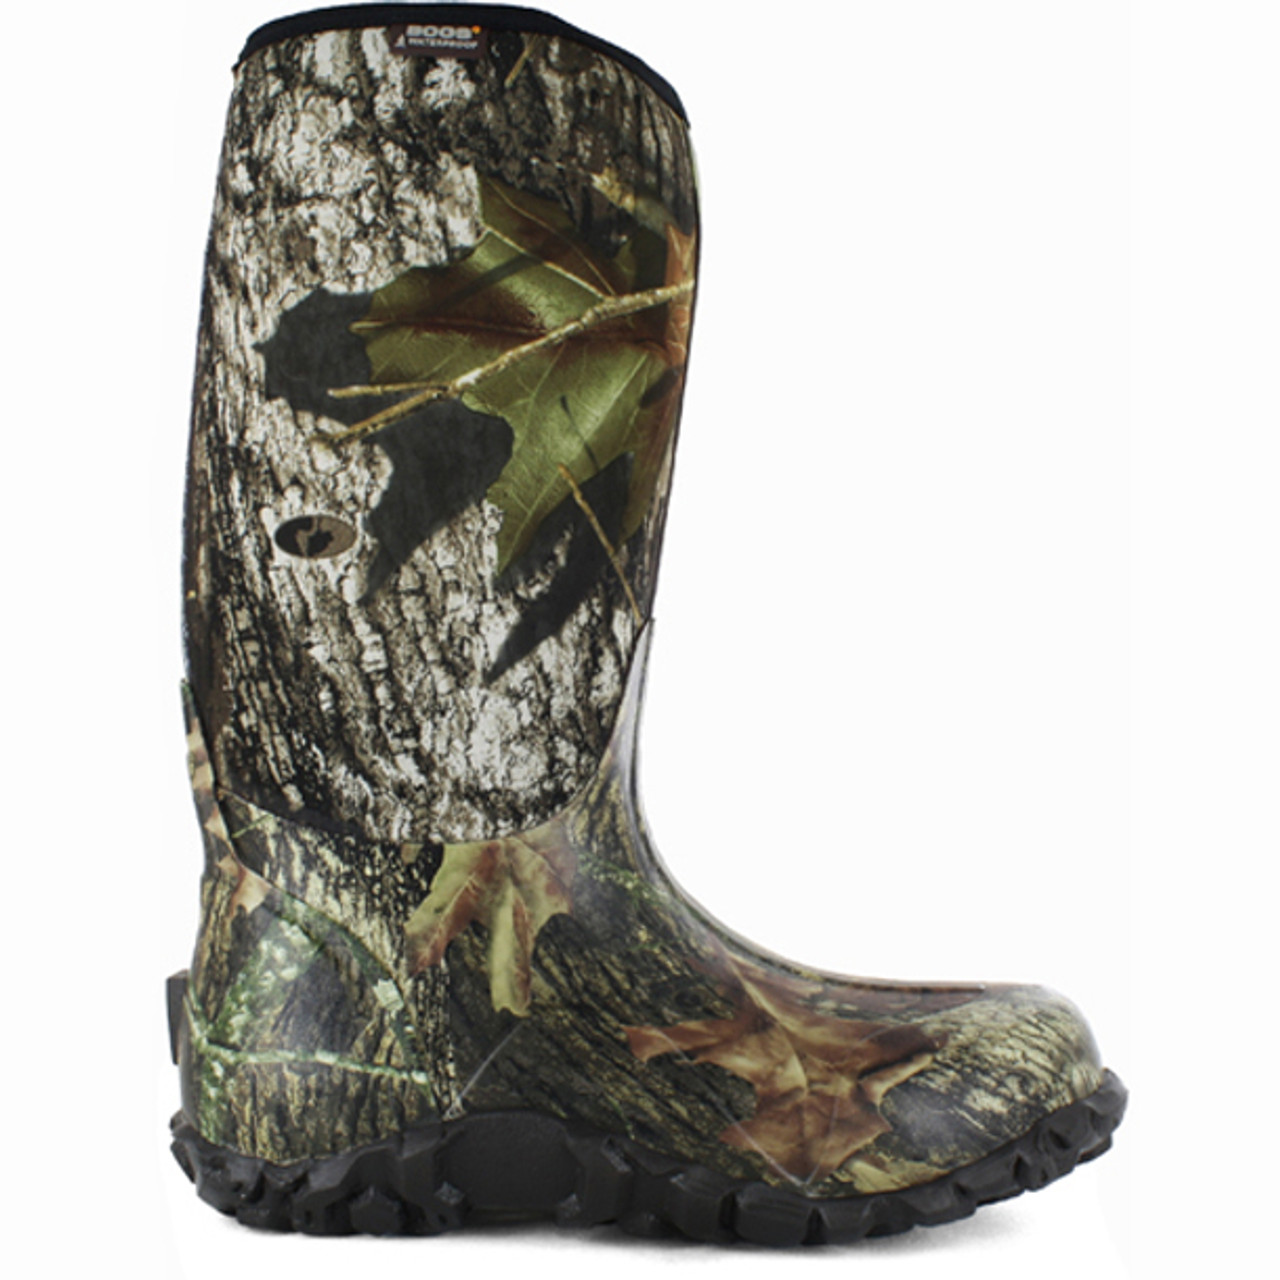 e3623a70aab BOGS Classic High Mens Insulated Waterproof Gumboots in Mossy Oak